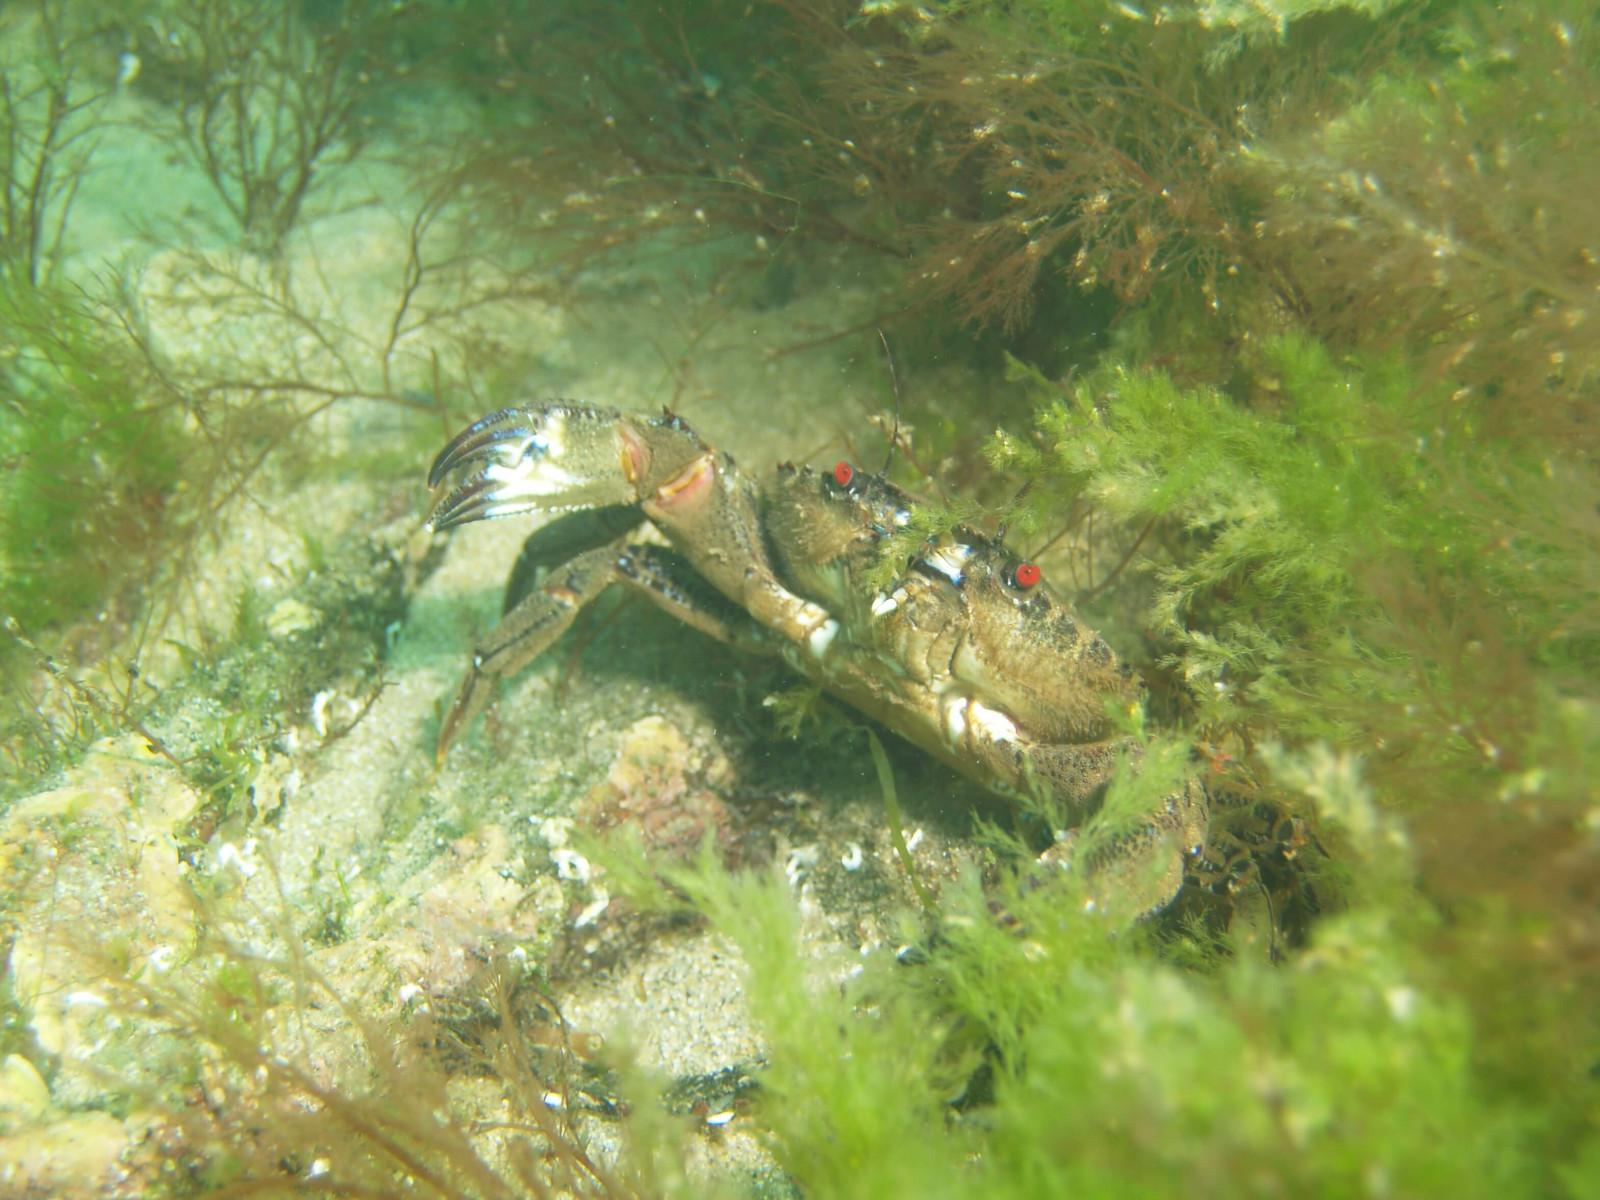 Images from Dive at Porth Dafarch, west coast of Anglesey in North Wales (1)